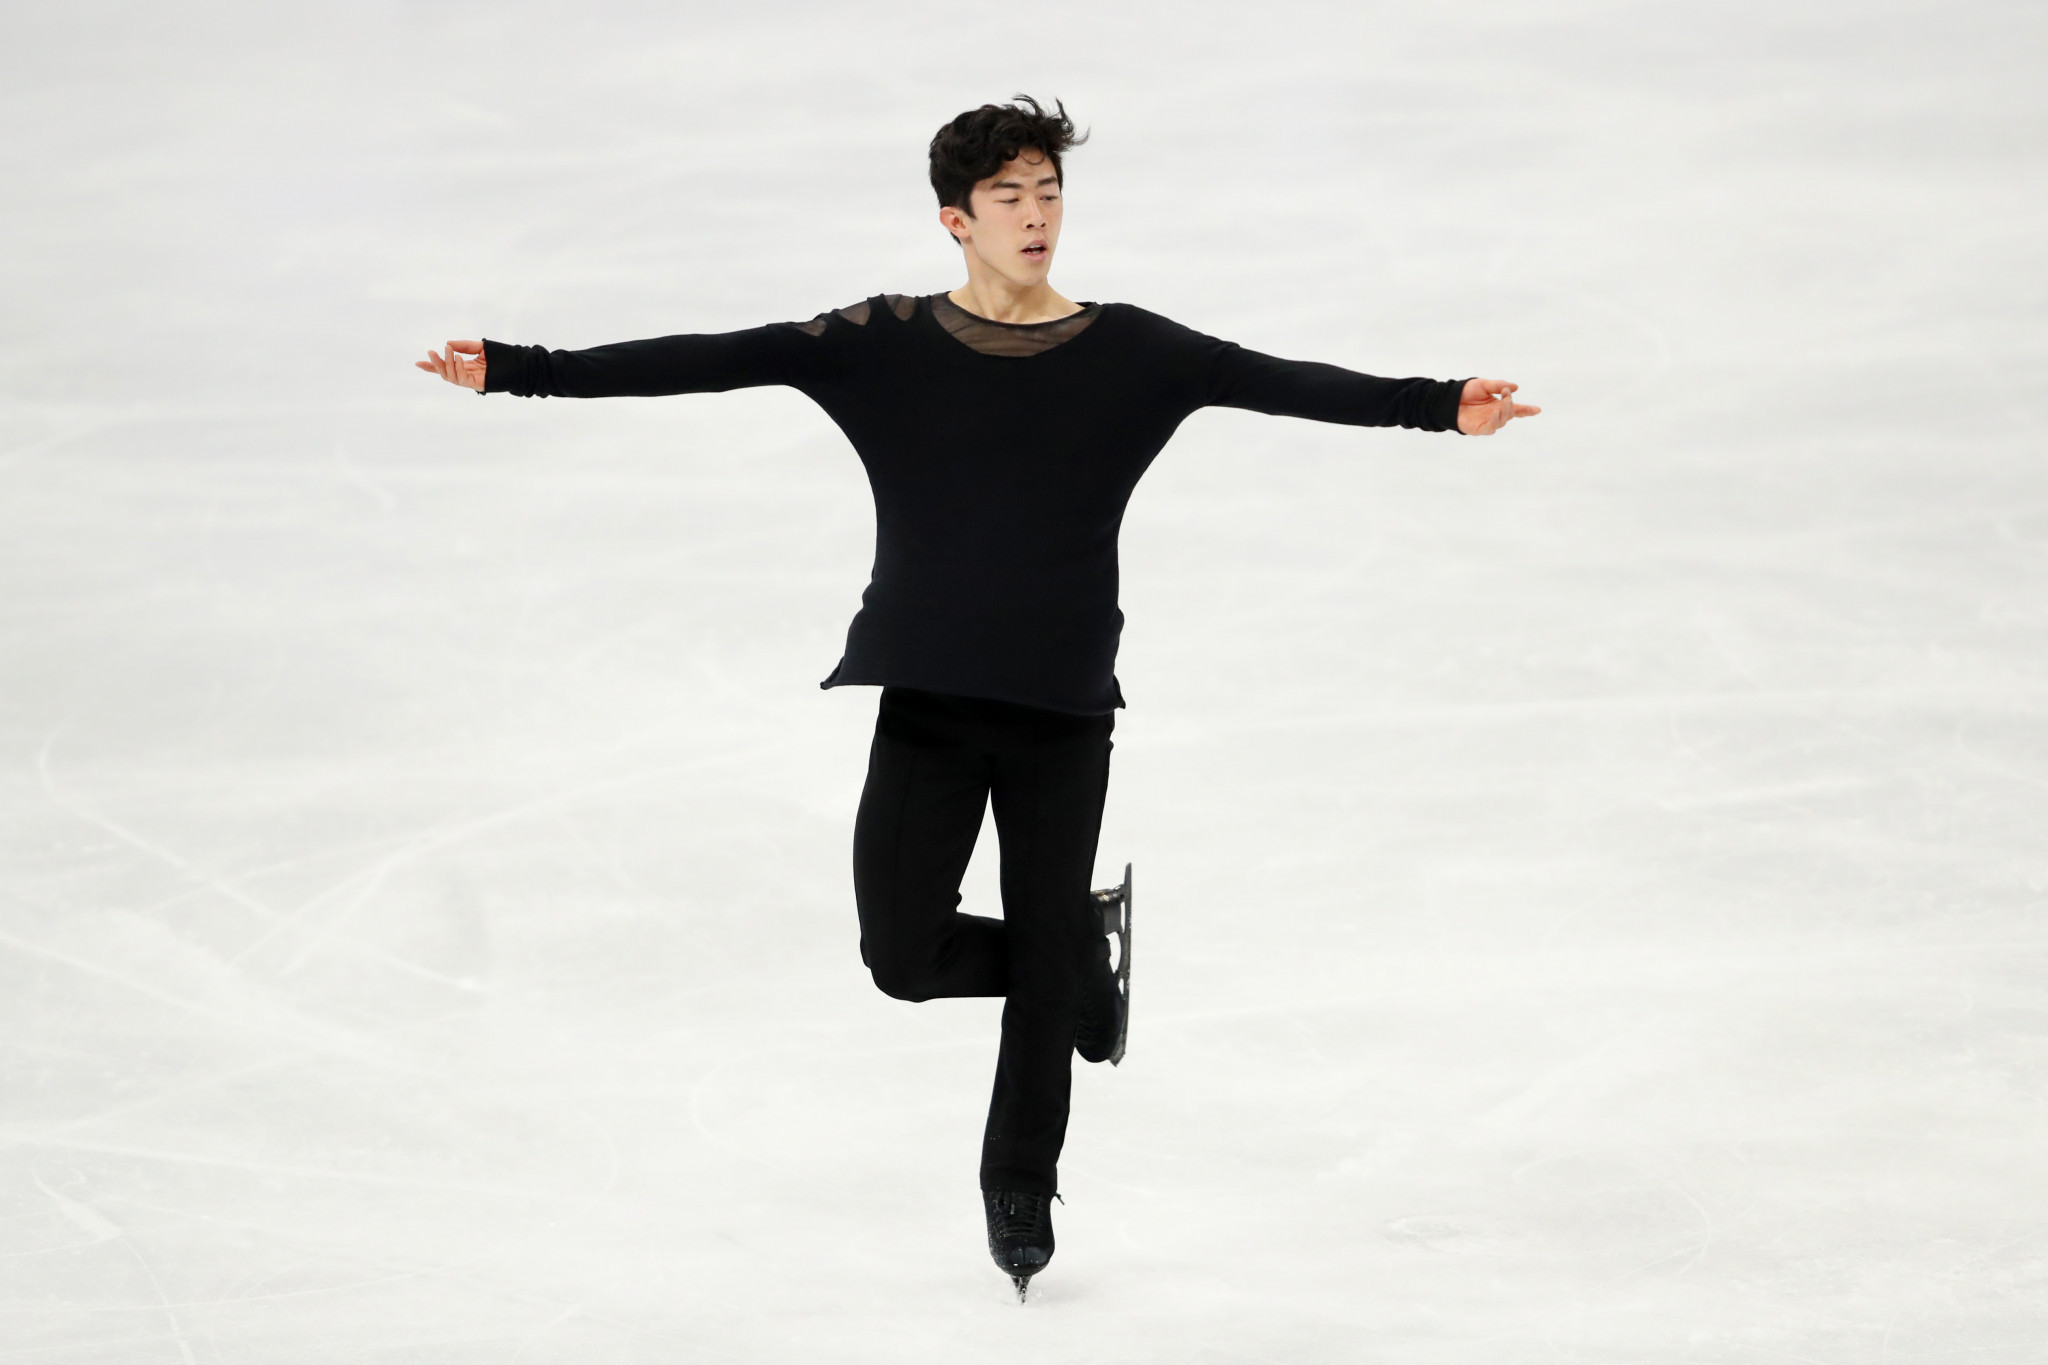 Chen produces impressive free routine to win men's singles title at World Figure Skating Championships